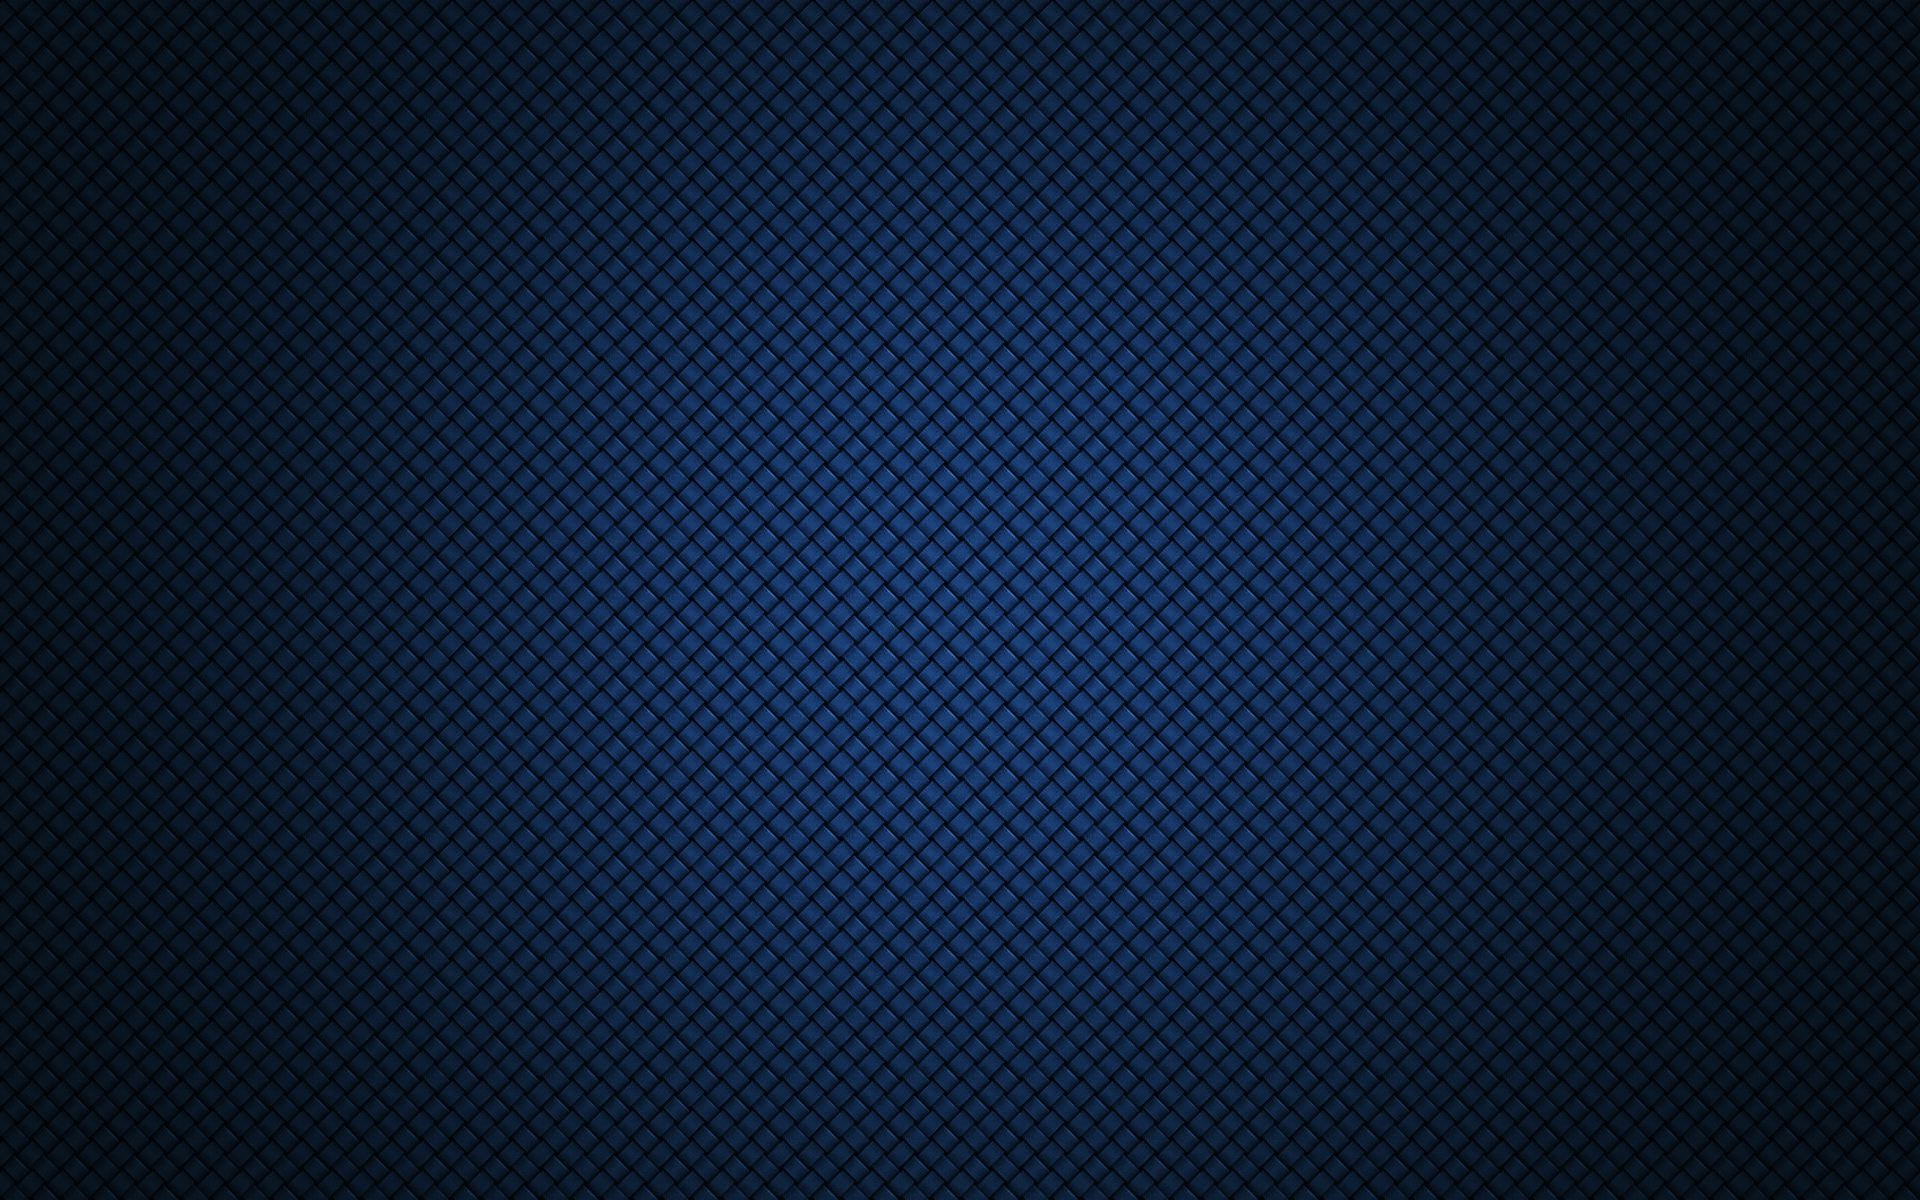 Dark blue hd wallpapers wallpapersafari for Dark blue wallpaper for walls